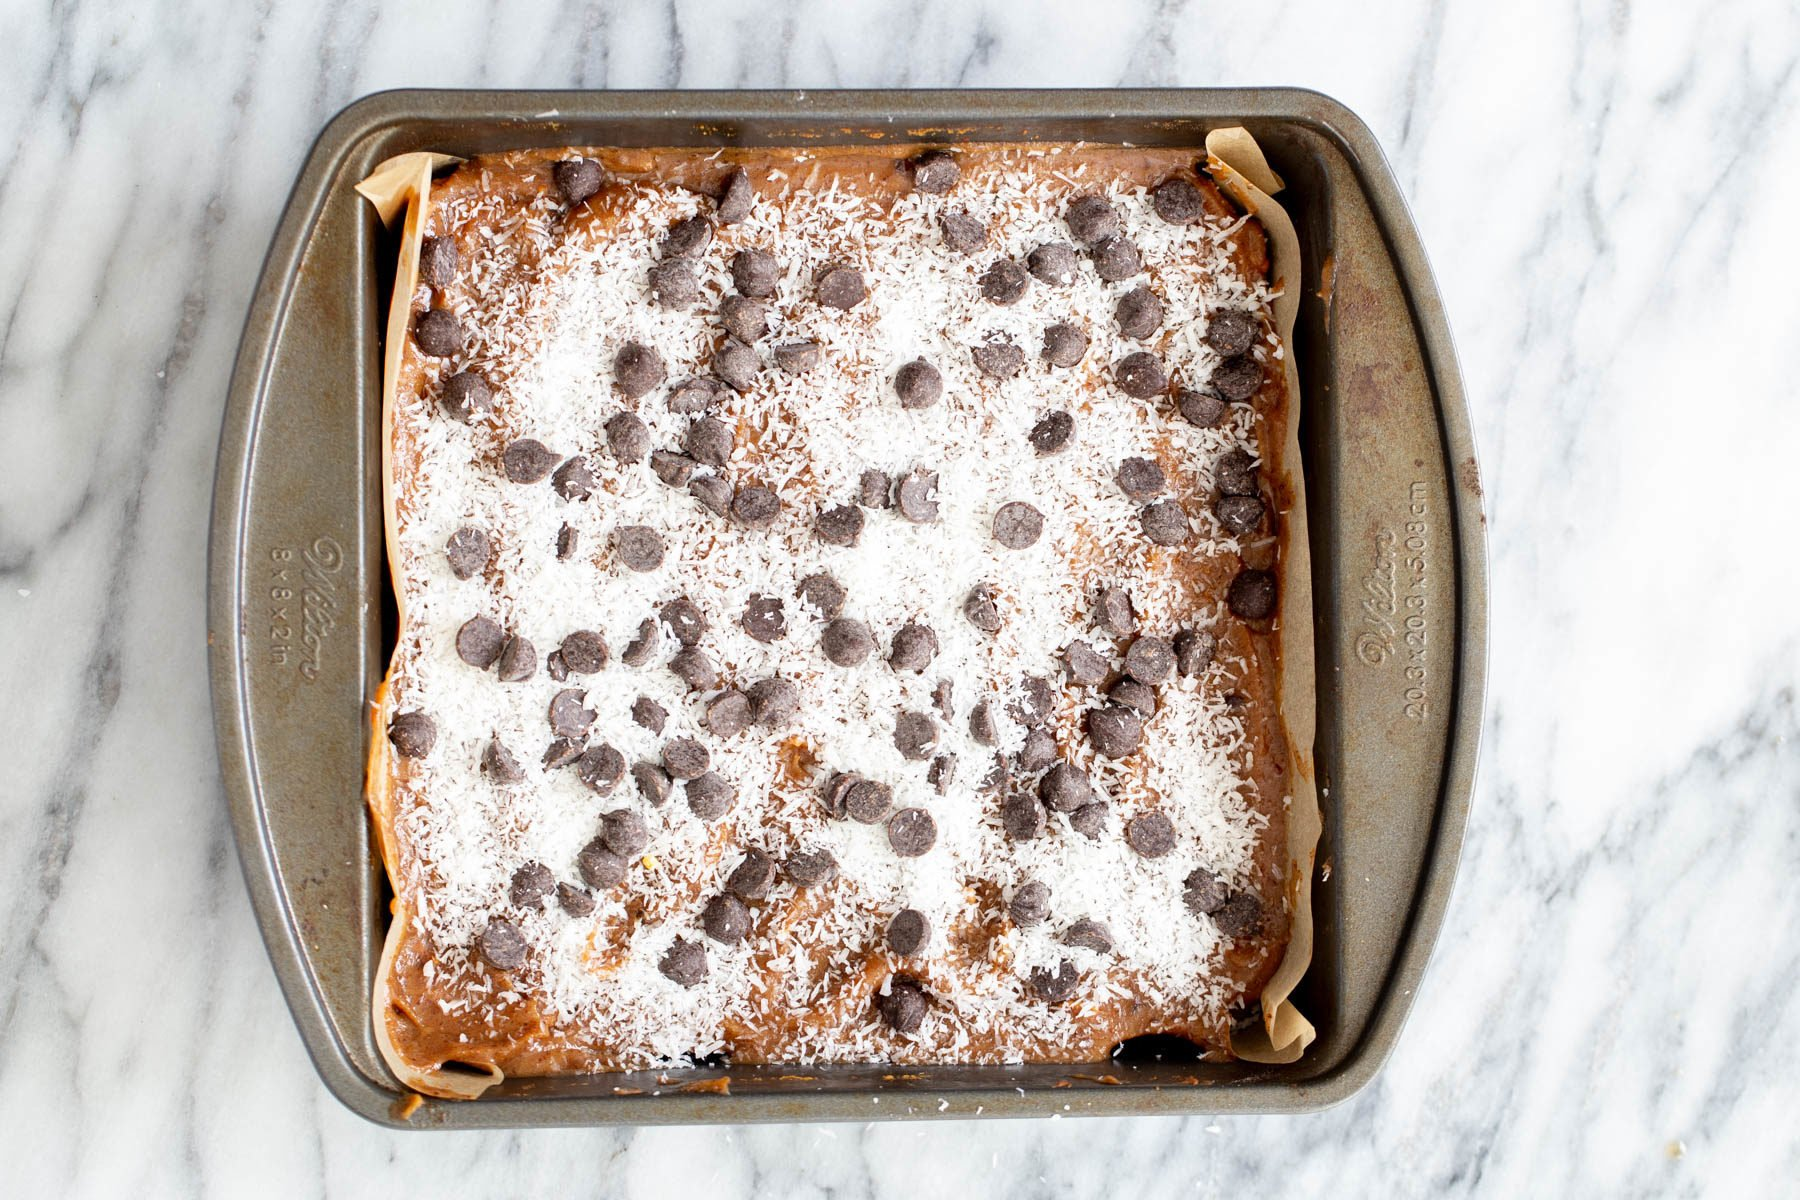 chocolate chips and shredded coconut being spread on top of oatmeal cookie base and date caramel to make caramel bars